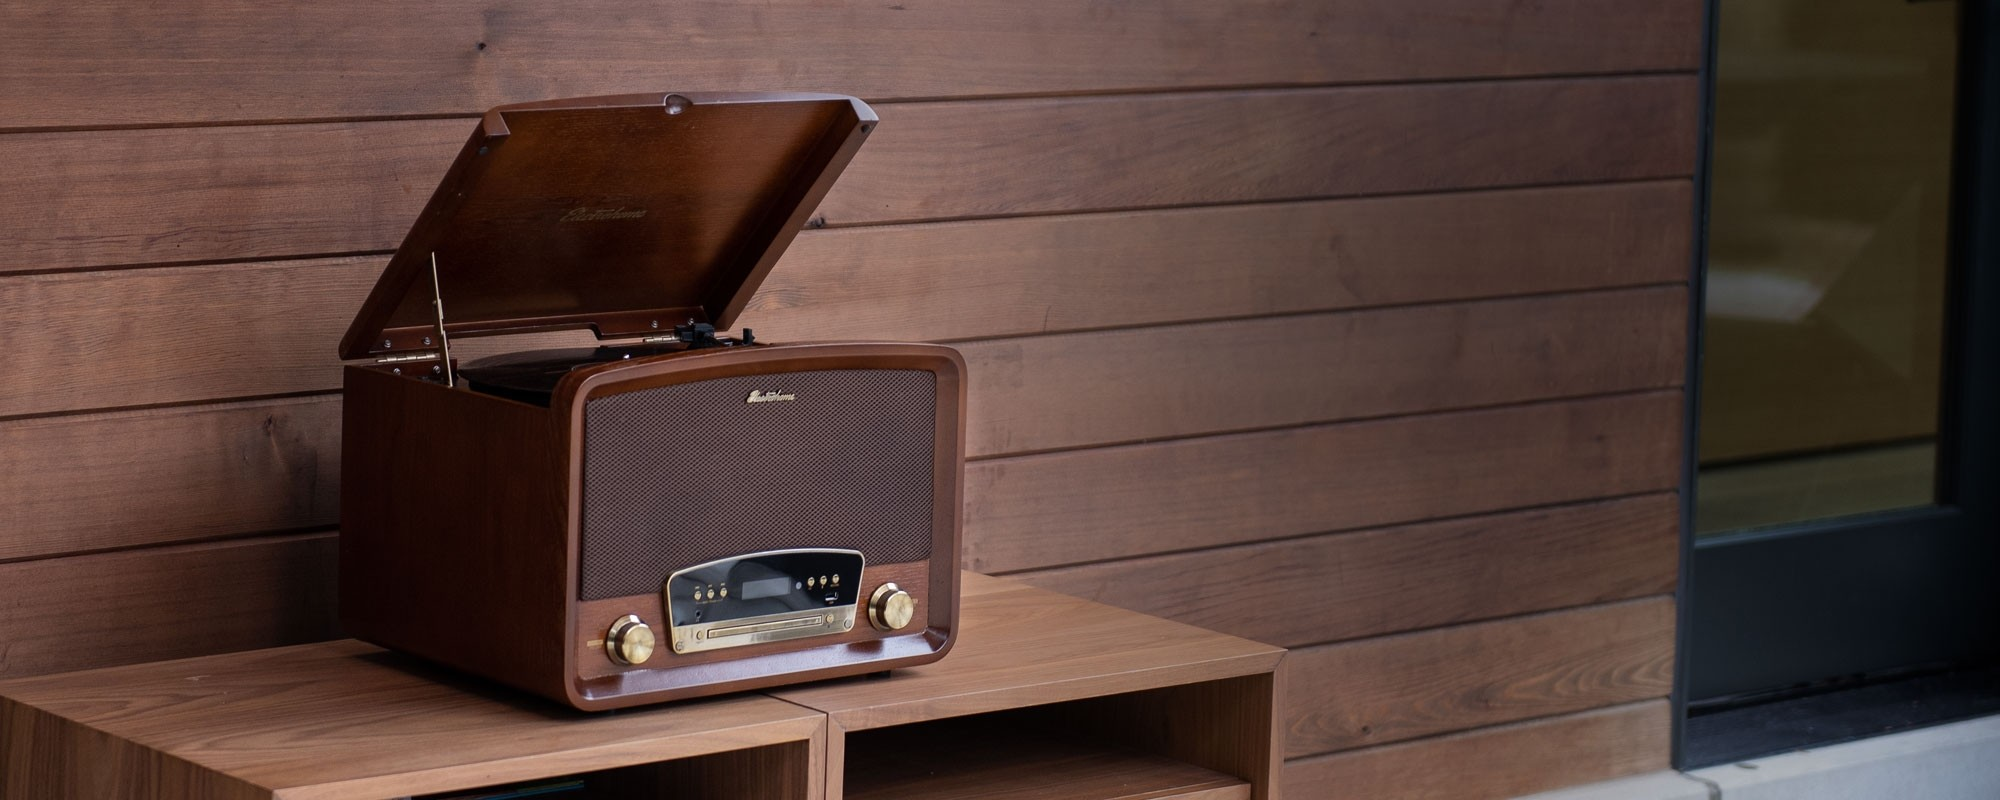 Concerto 7-in-1 Vinyl Record Player - Main Lifestyle Walnut